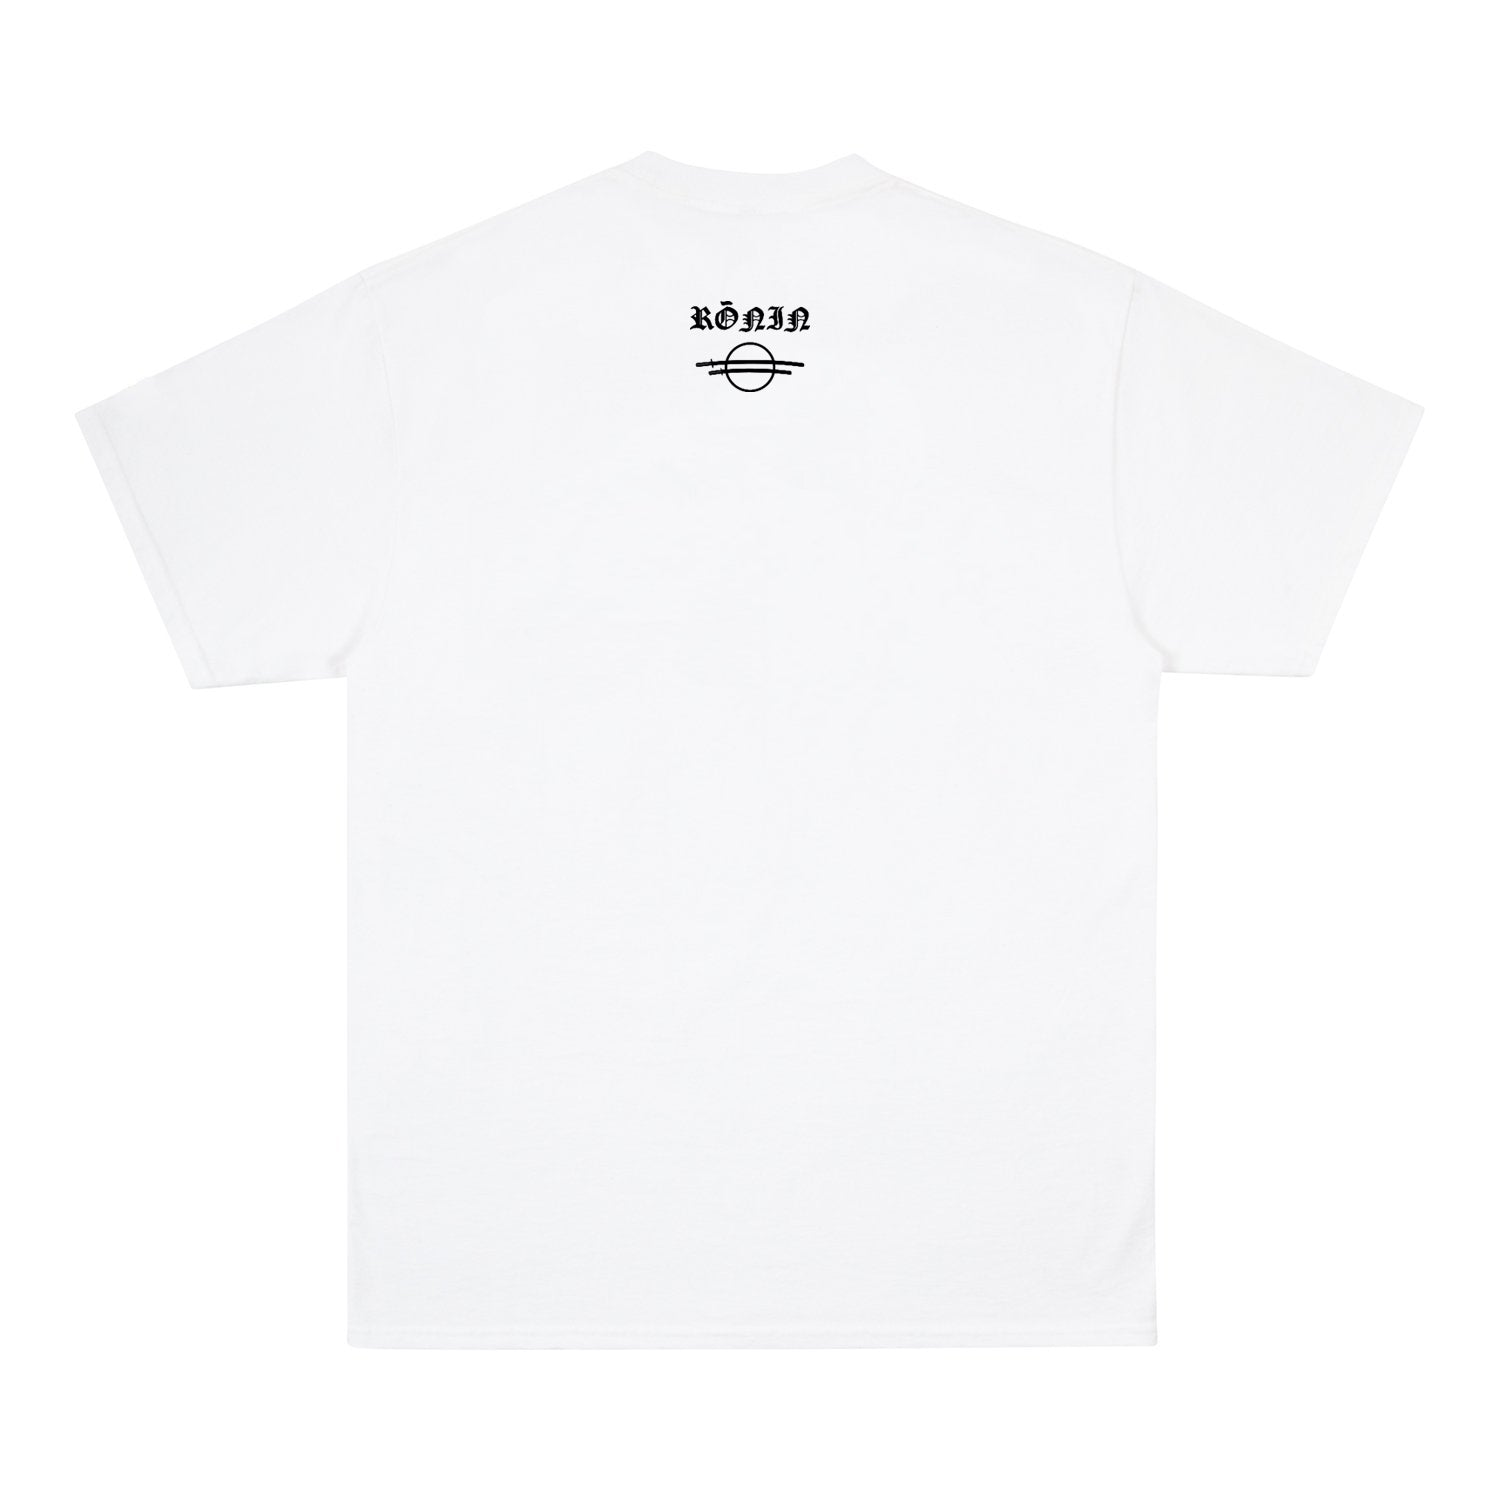 Born Alone Tee - White